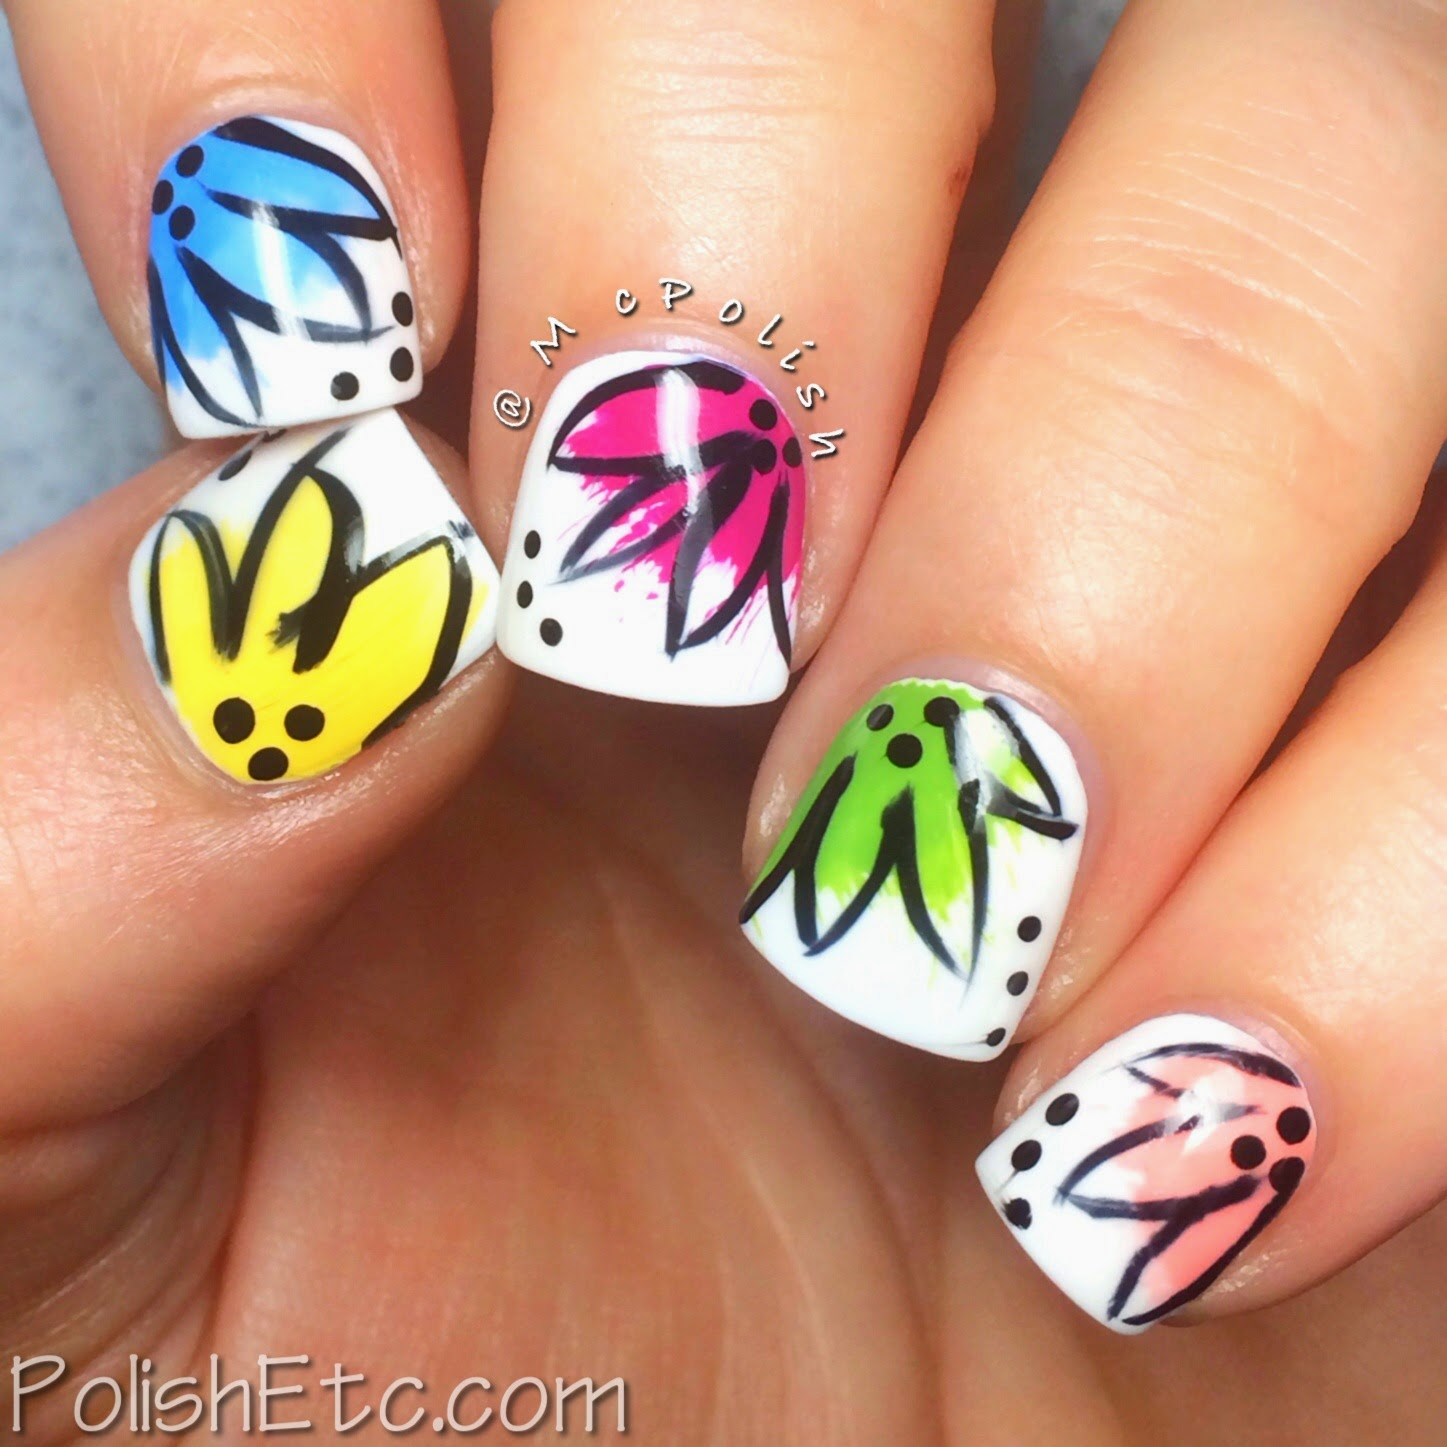 Tillie Pollish - Sweet Treats - Splash Flower mani